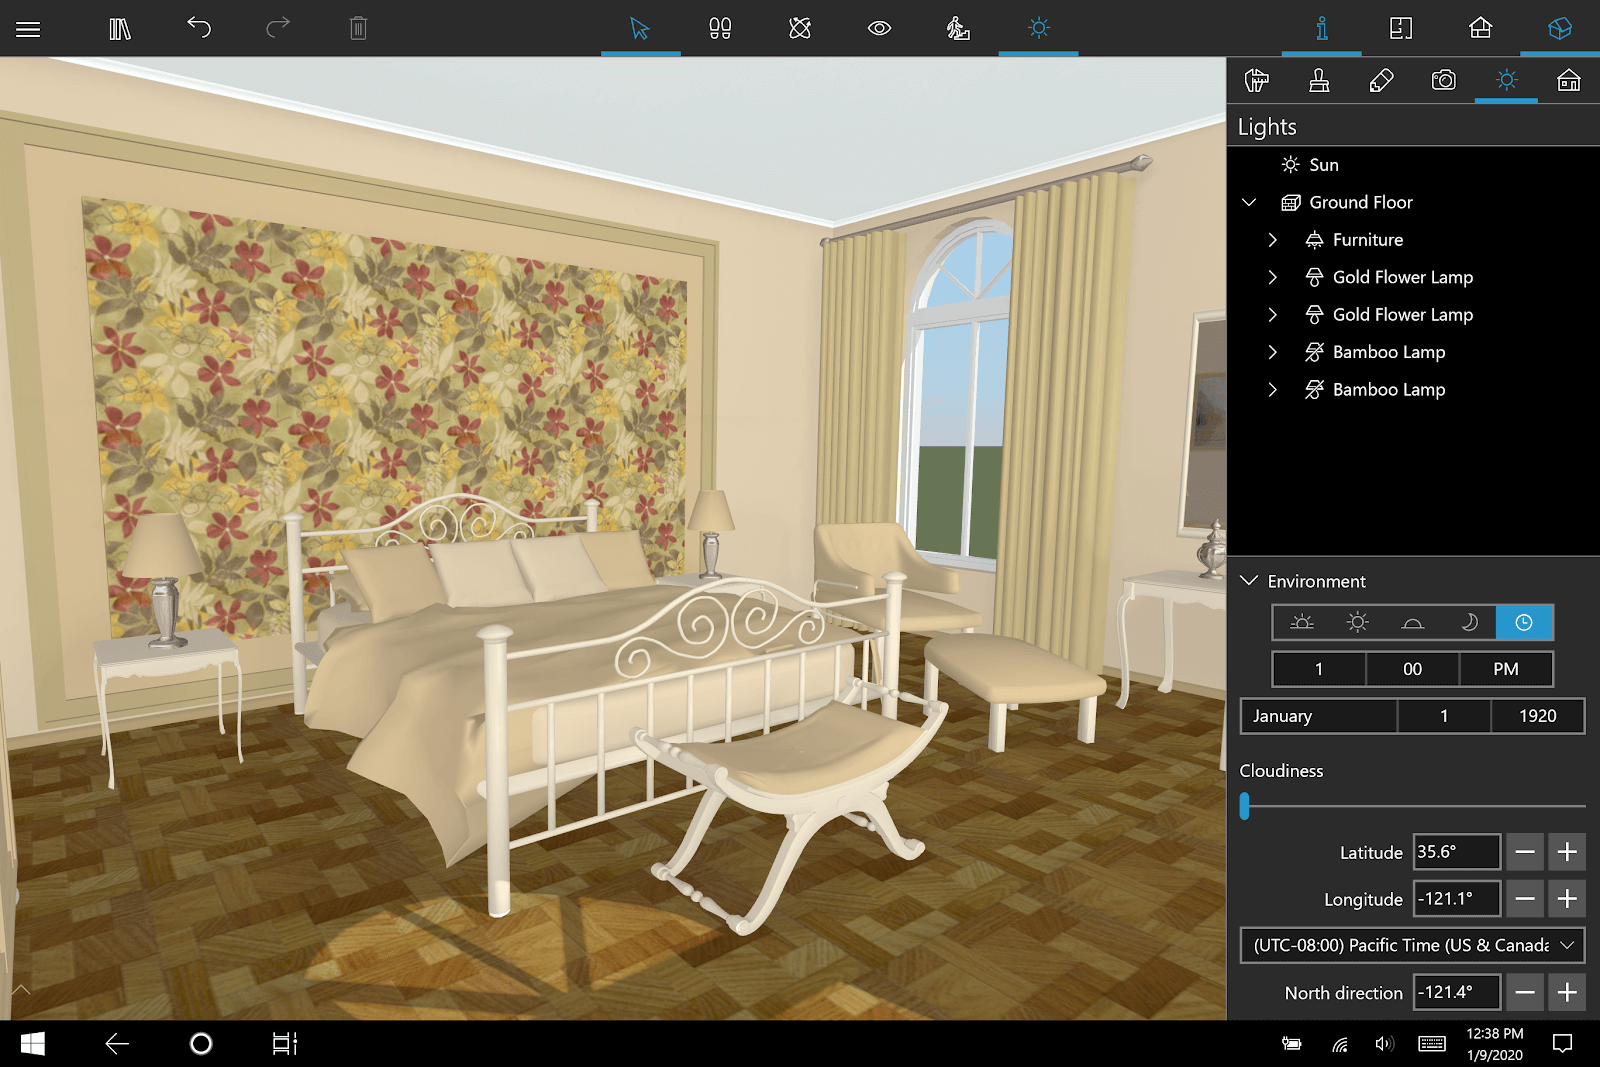 Interior Design Made Easy In Live Home 3d For Windows Business Telegraph